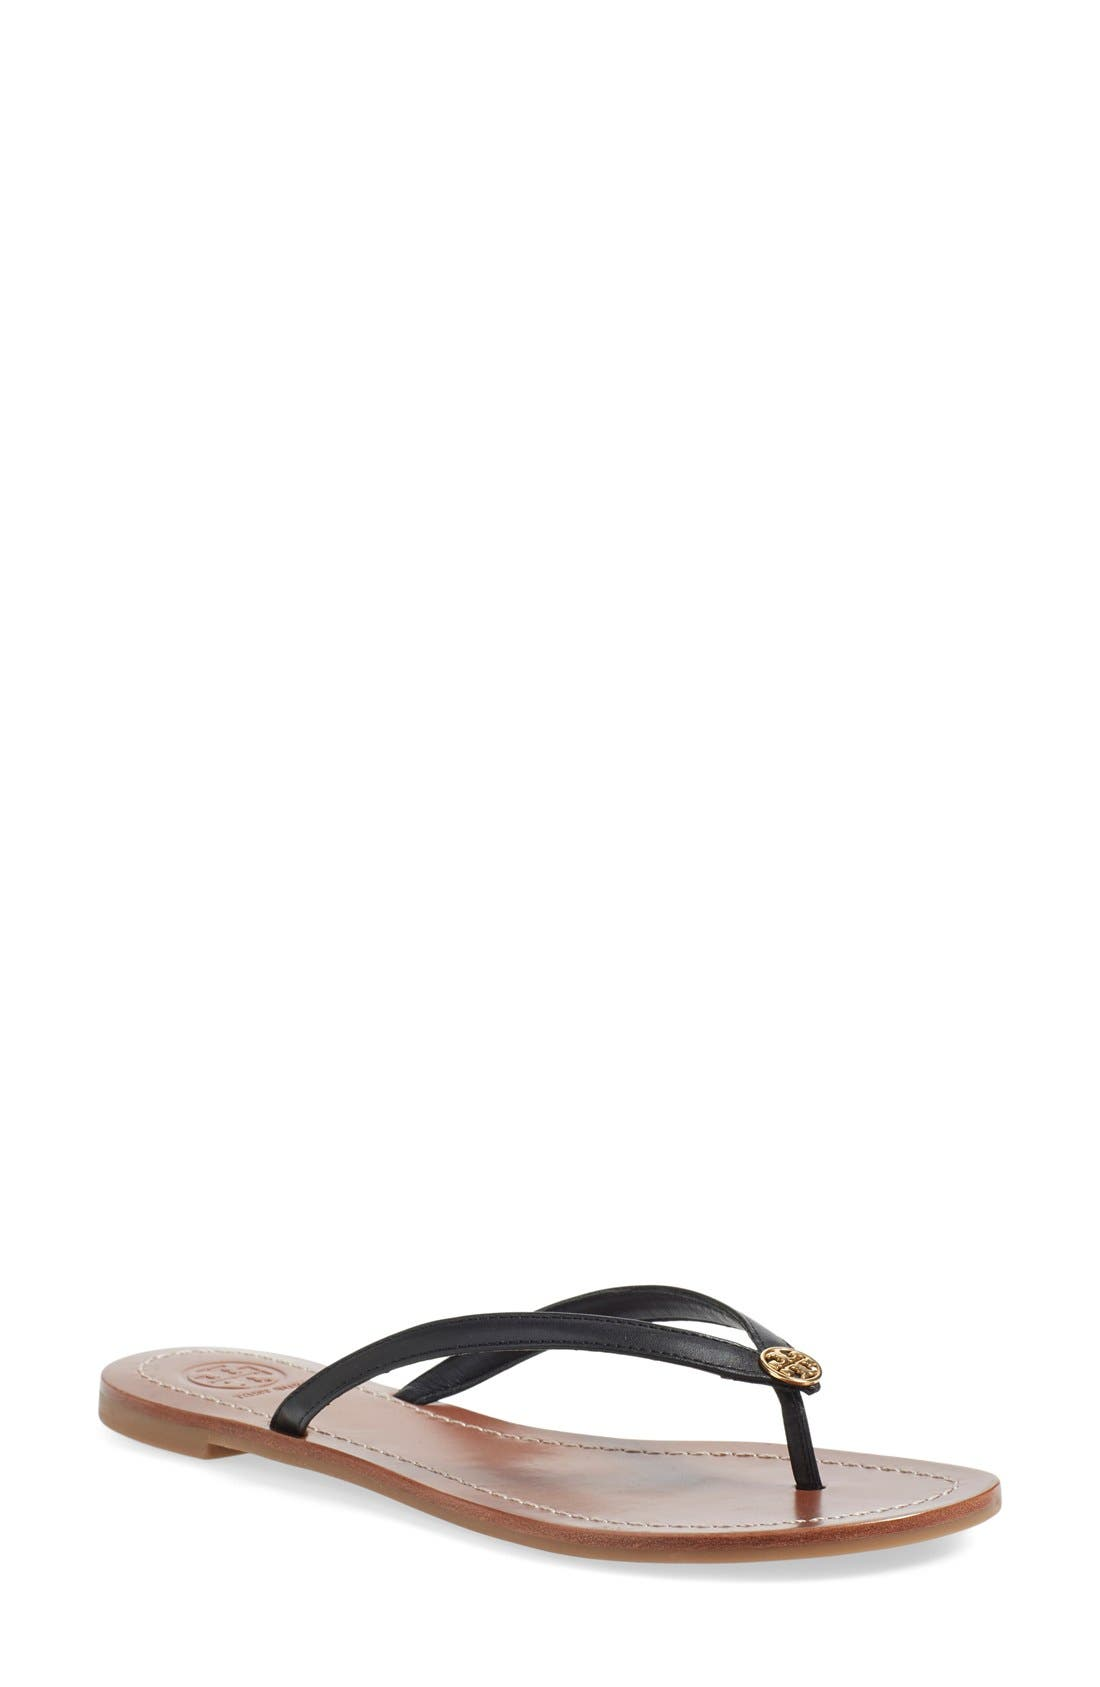 TORY BURCH 'Terra' Flip Flop, Main, color, 001